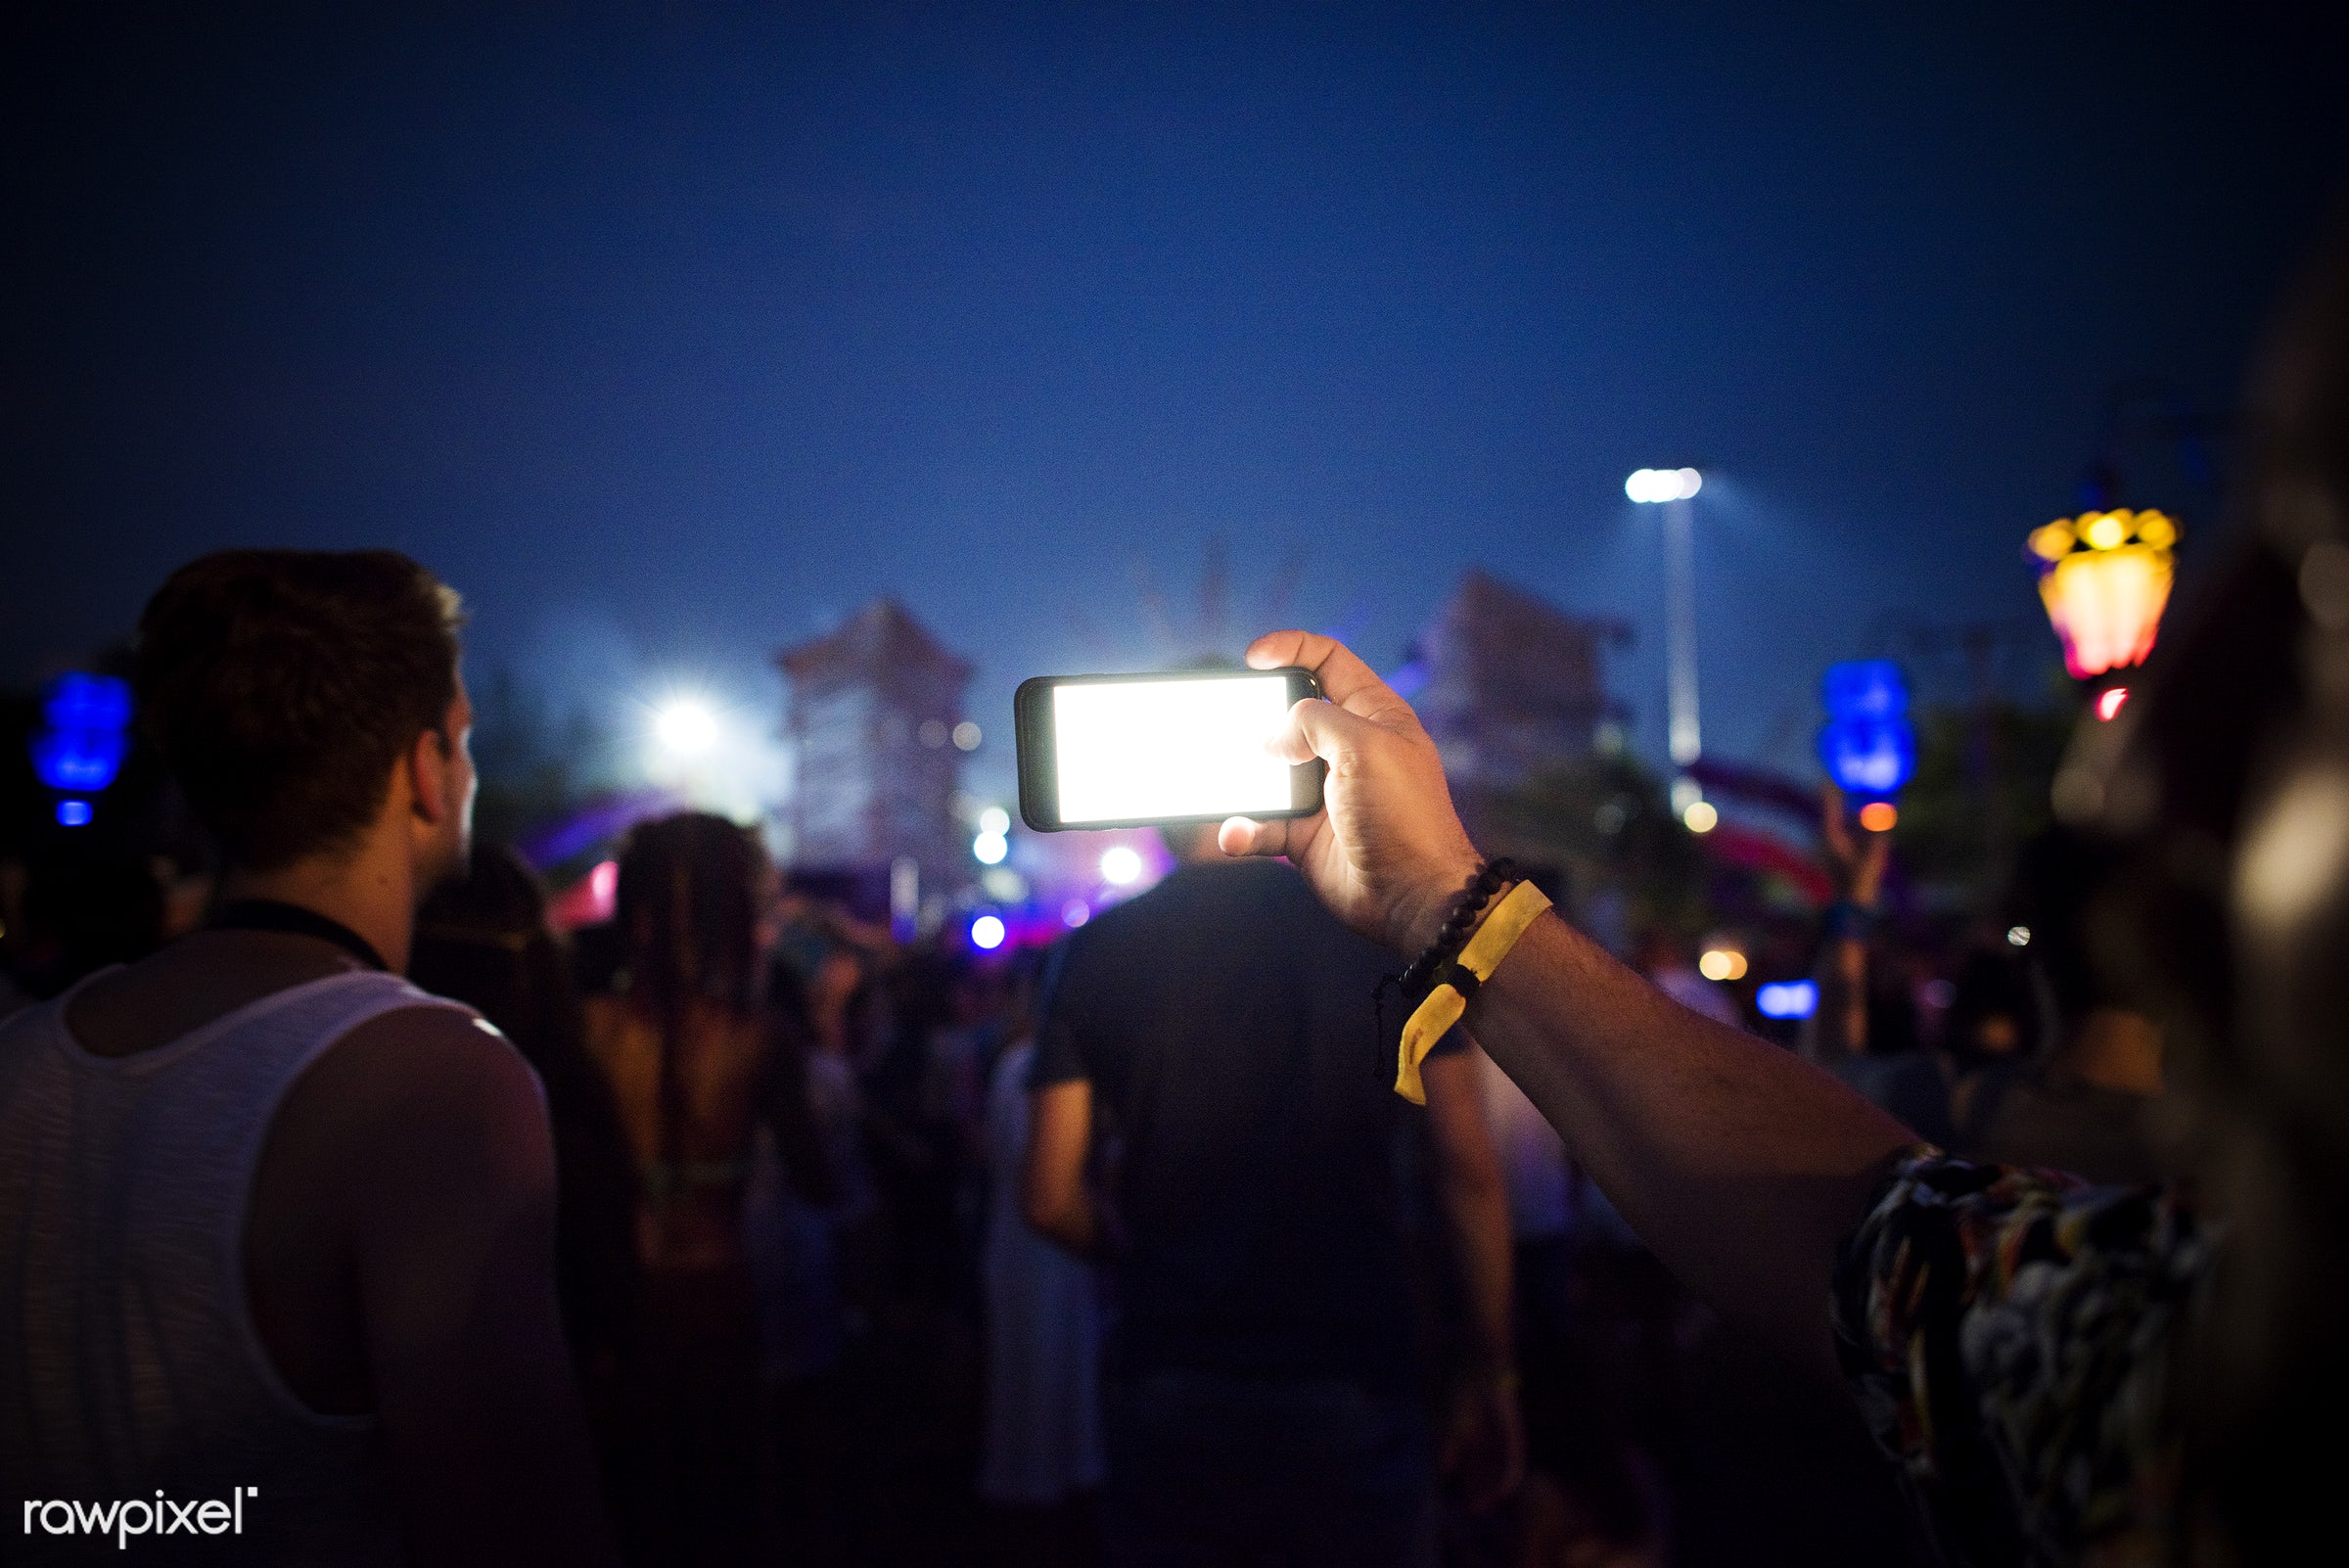 concert, phone, snap, carefree, party, shot, people, together, socializing, event, mobile phone, capture, weekend, festival...